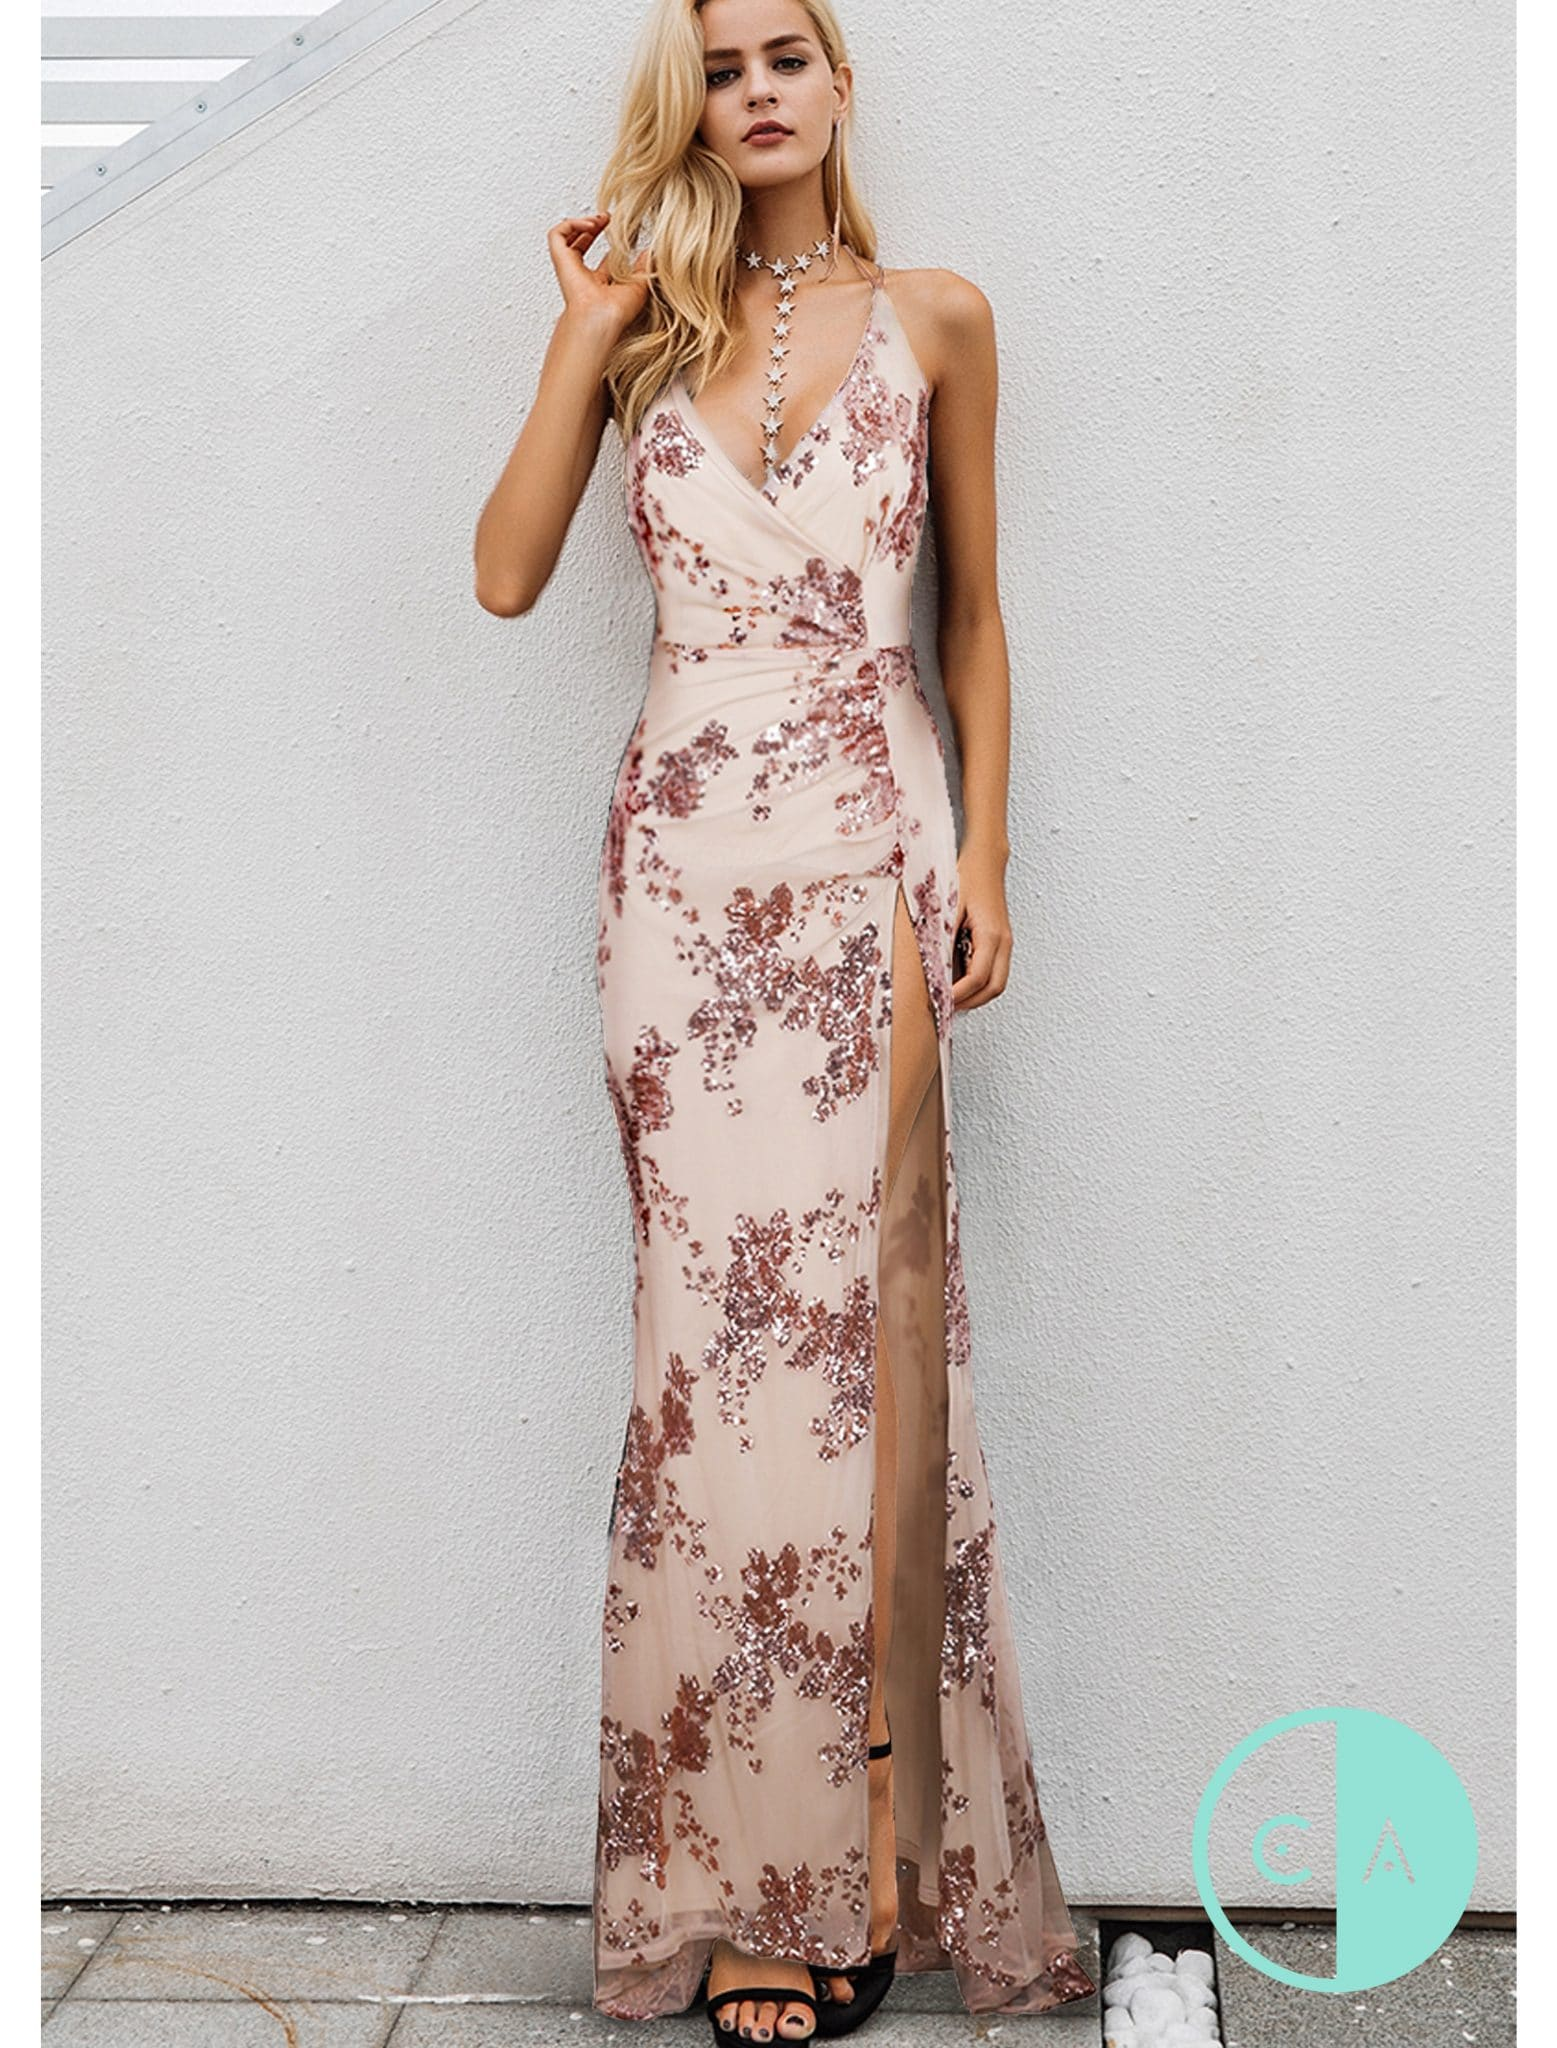 Splendid Limited Edition Nude Rose G Sequin Maxi T Split 4 Rose G Sequin Dress Dillards Rose G Sequin Dress Macys wedding dress Rose Gold Sequin Dress